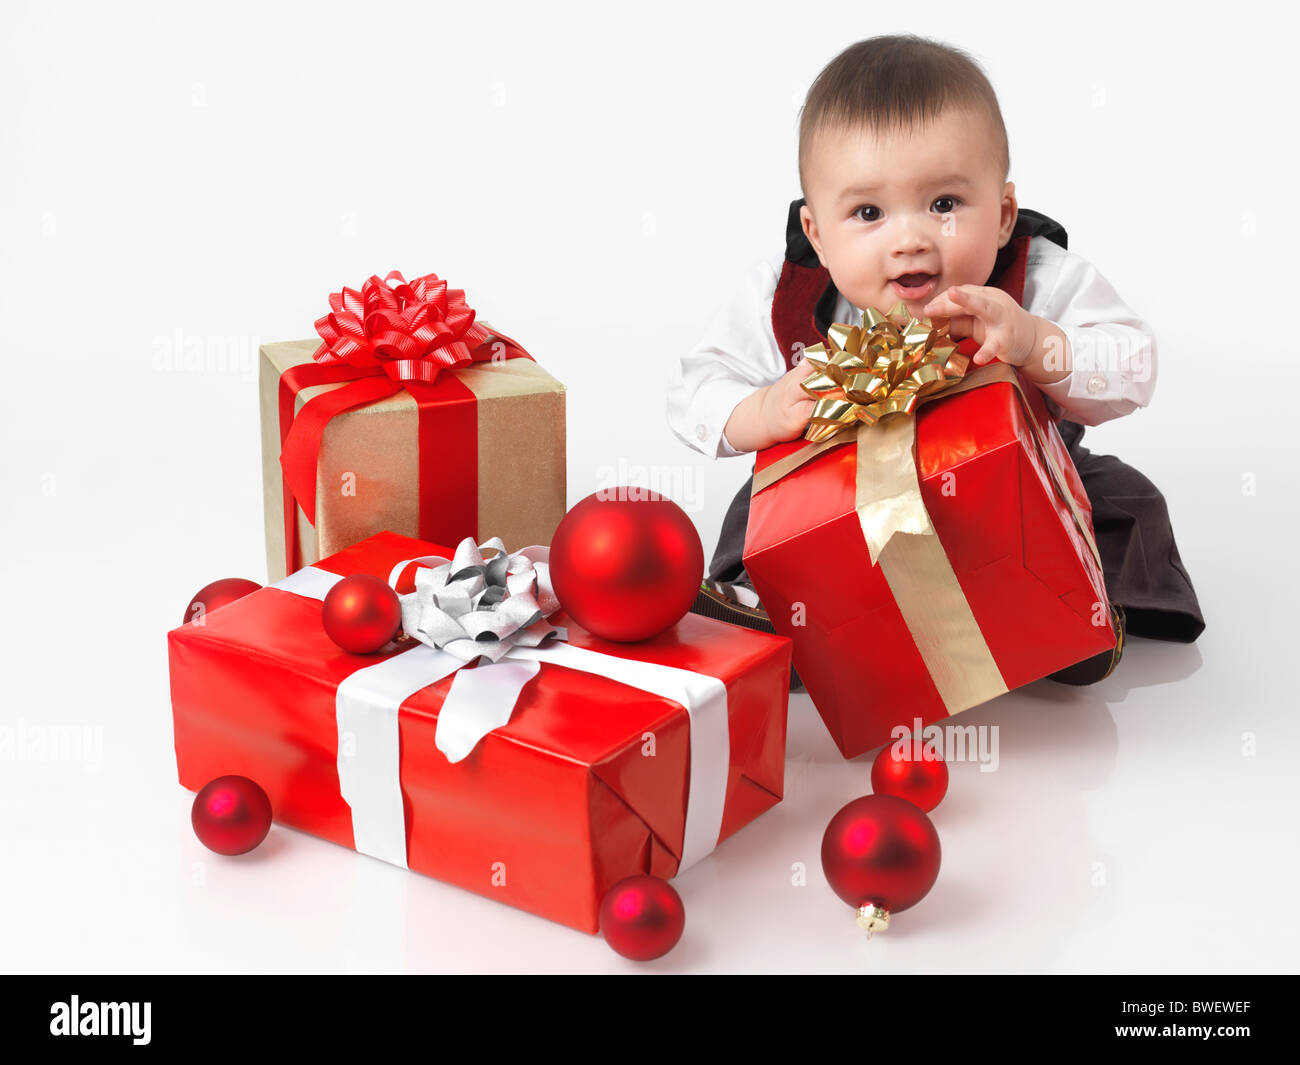 Happy six month old baby boy opening Christmas presents. Isolated on white background. - Stock Image